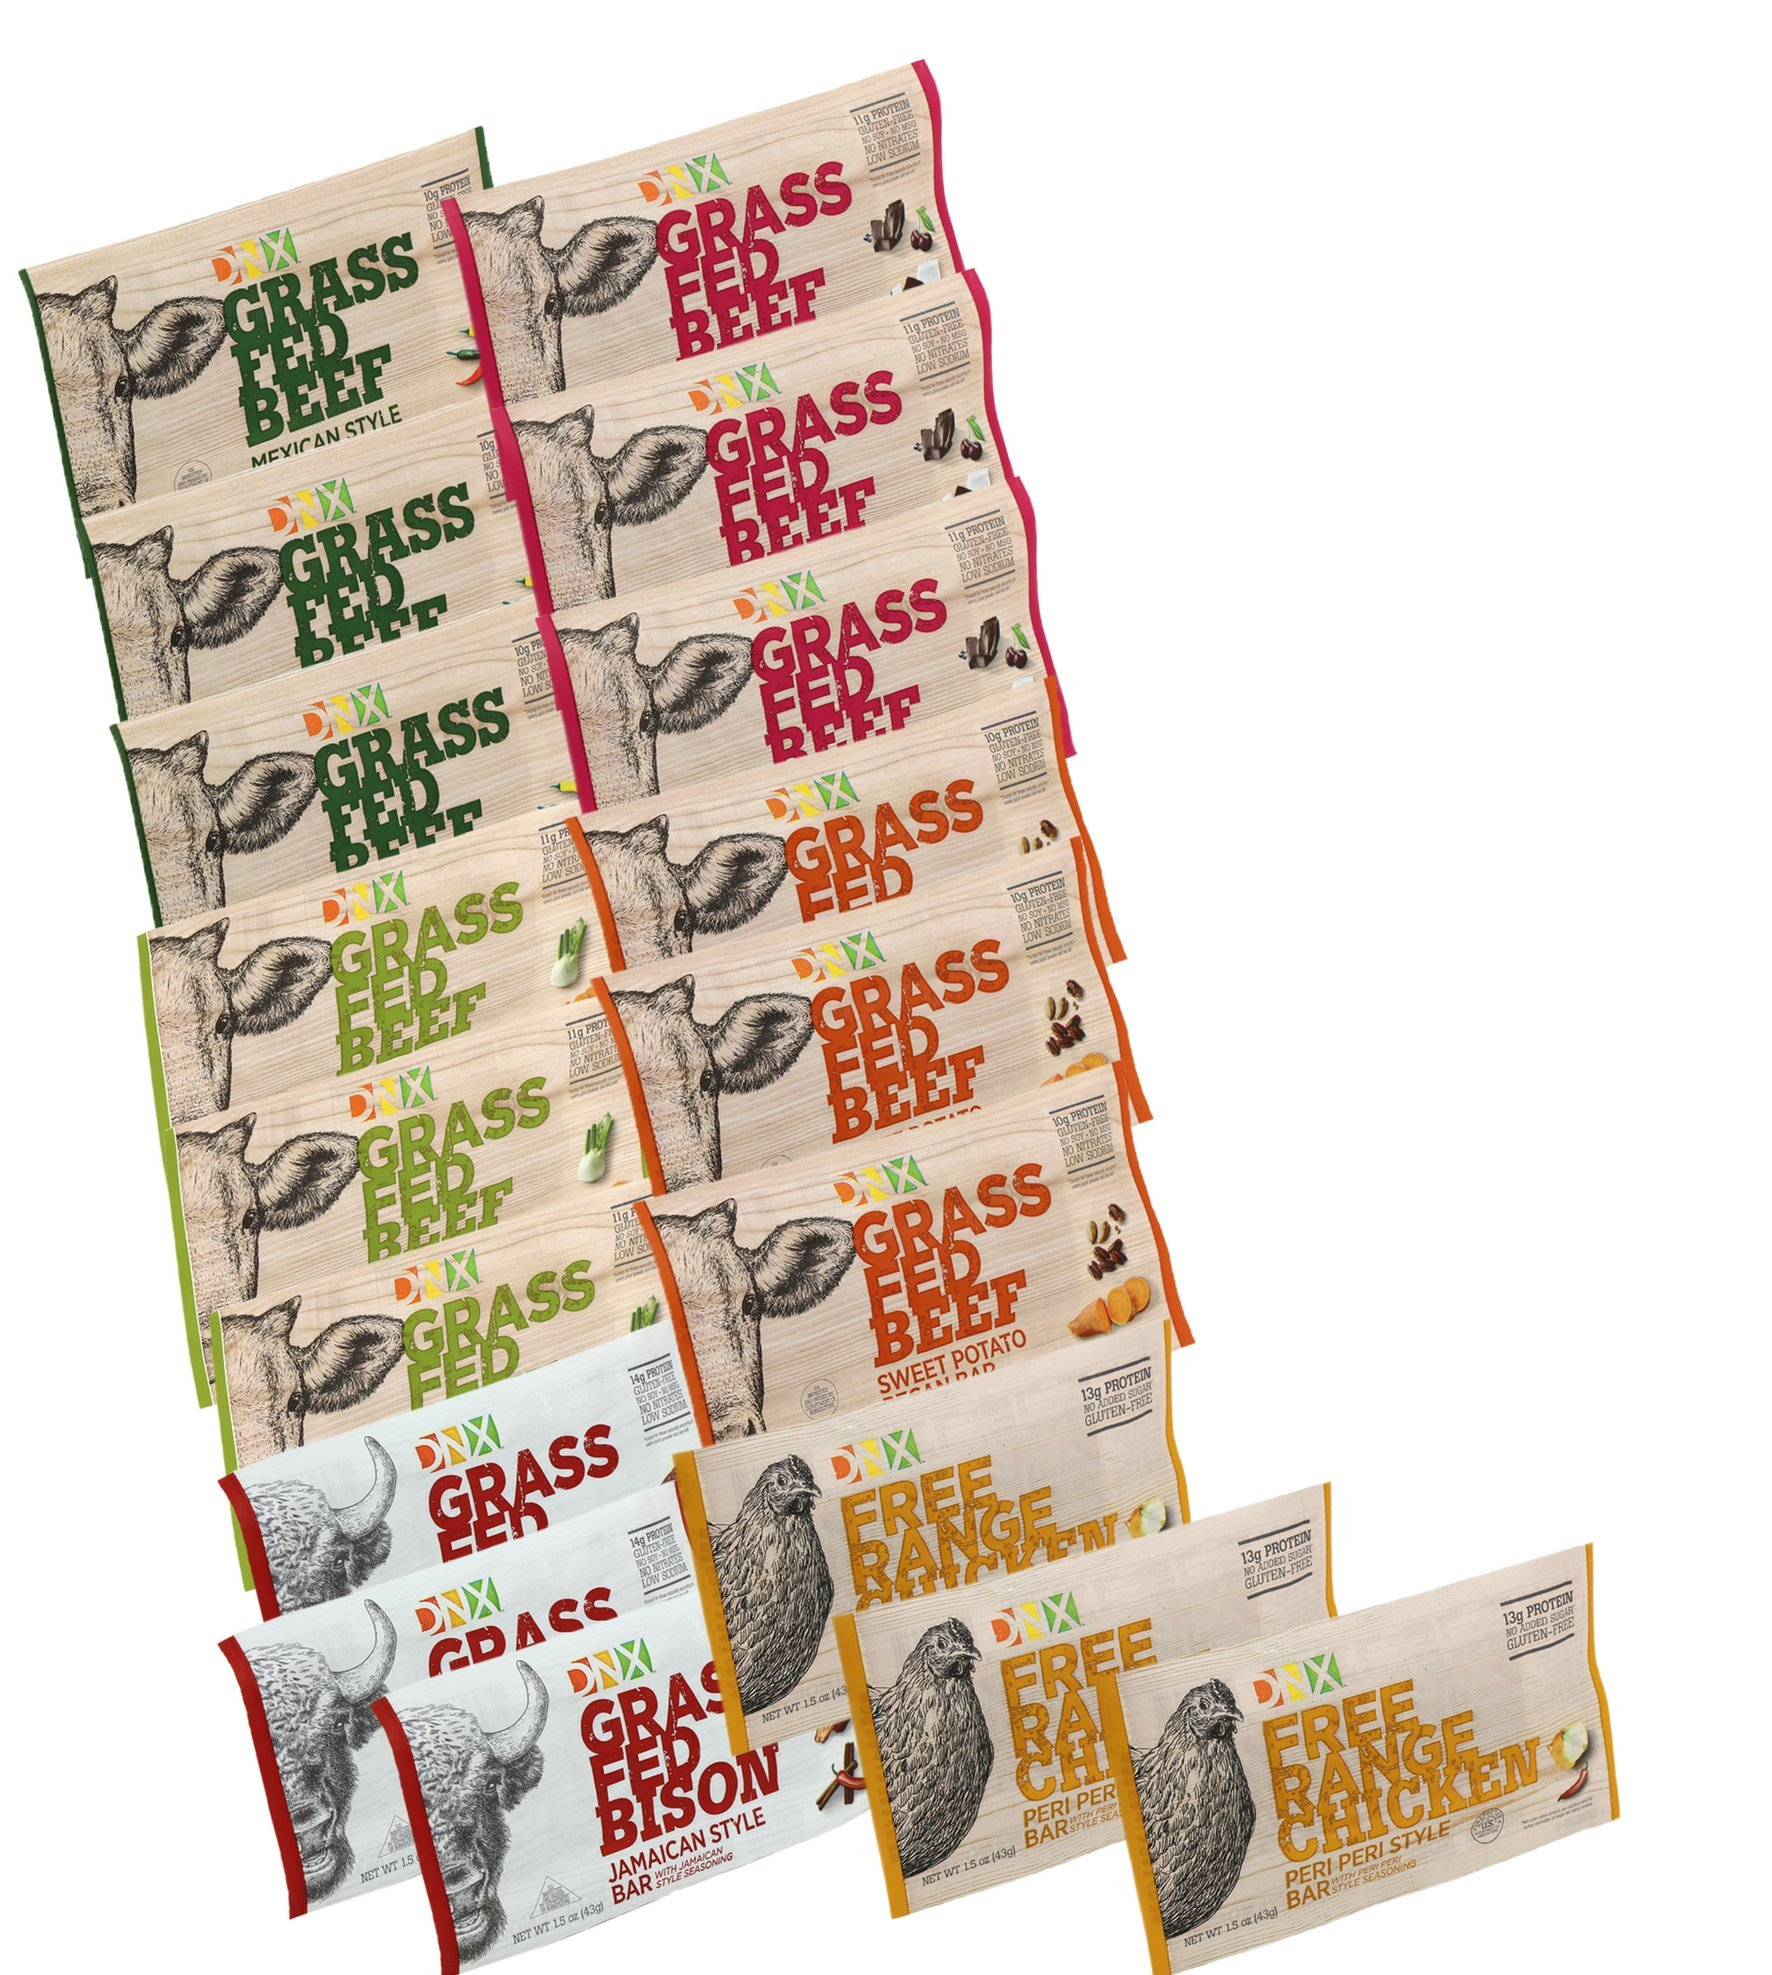 DNX Bar 18 Bar Variety Pack.Grass Fed Beef & Bison-Free Range Chicken Paleo Protein Bars Whole30 Approved, Organic Ingredients, Gluten Free, A Truly Epic Bar (18 Bars)